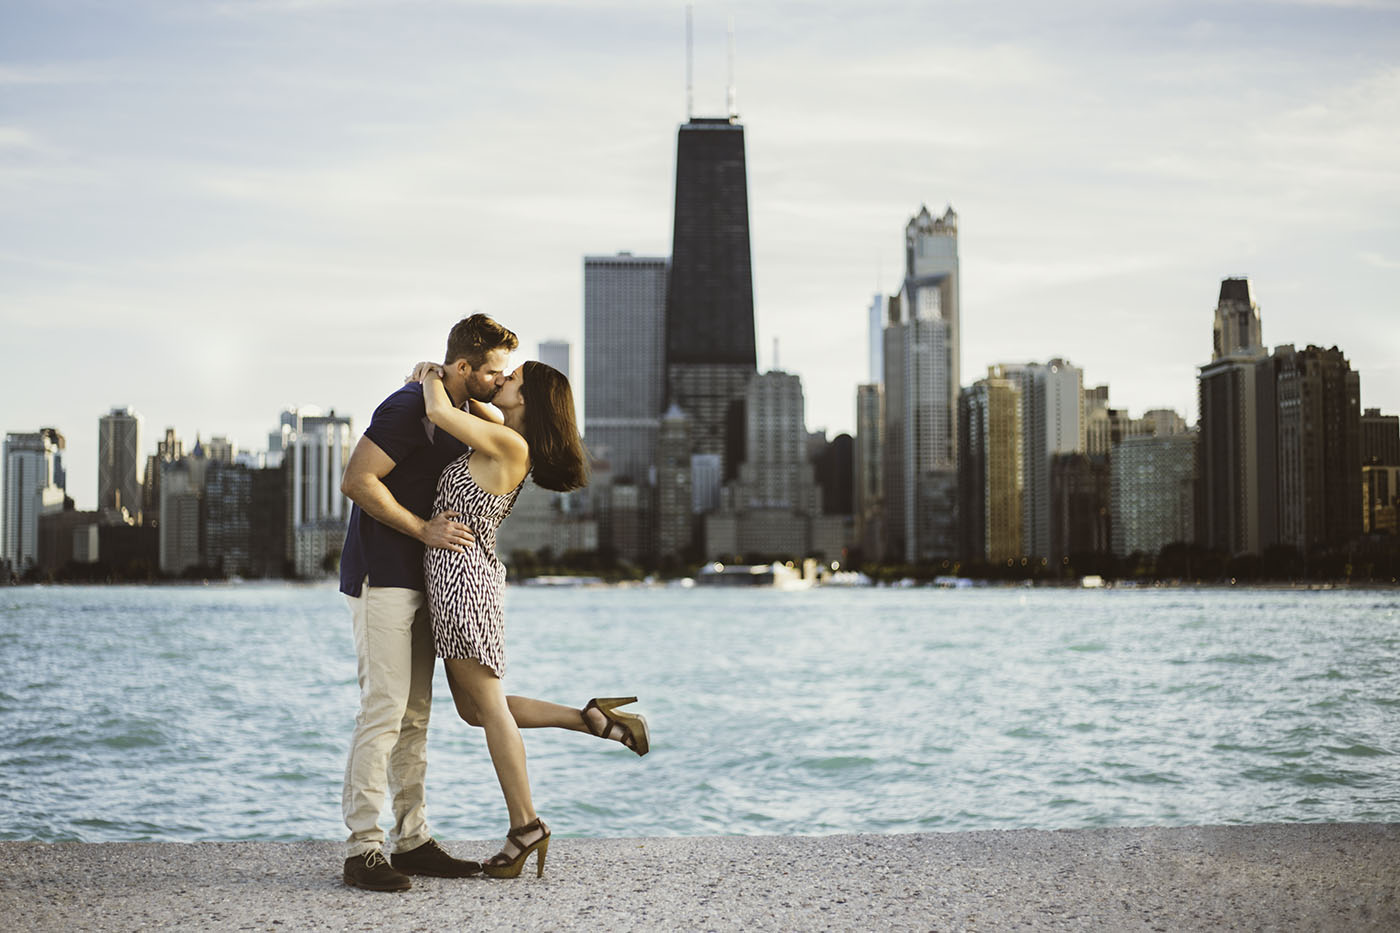 tina-and-drew-at-north-avenue-beach-in-chicago